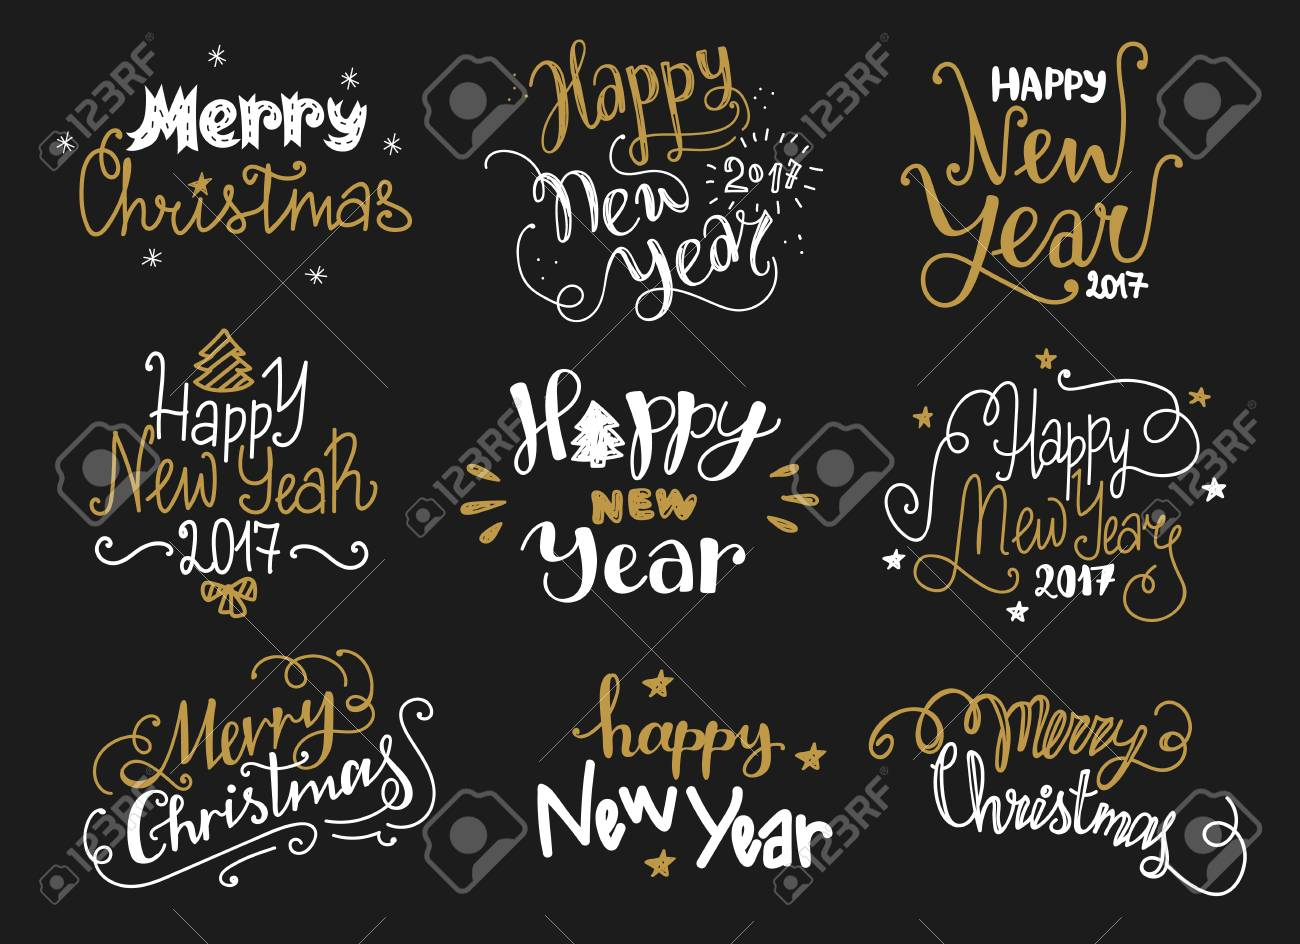 Happy new year and merry christmas golden hand drawn lettering holiday chalkboard greetings text happy new year and merry christmas golden hand drawn lettering labels in funny style holiday m4hsunfo